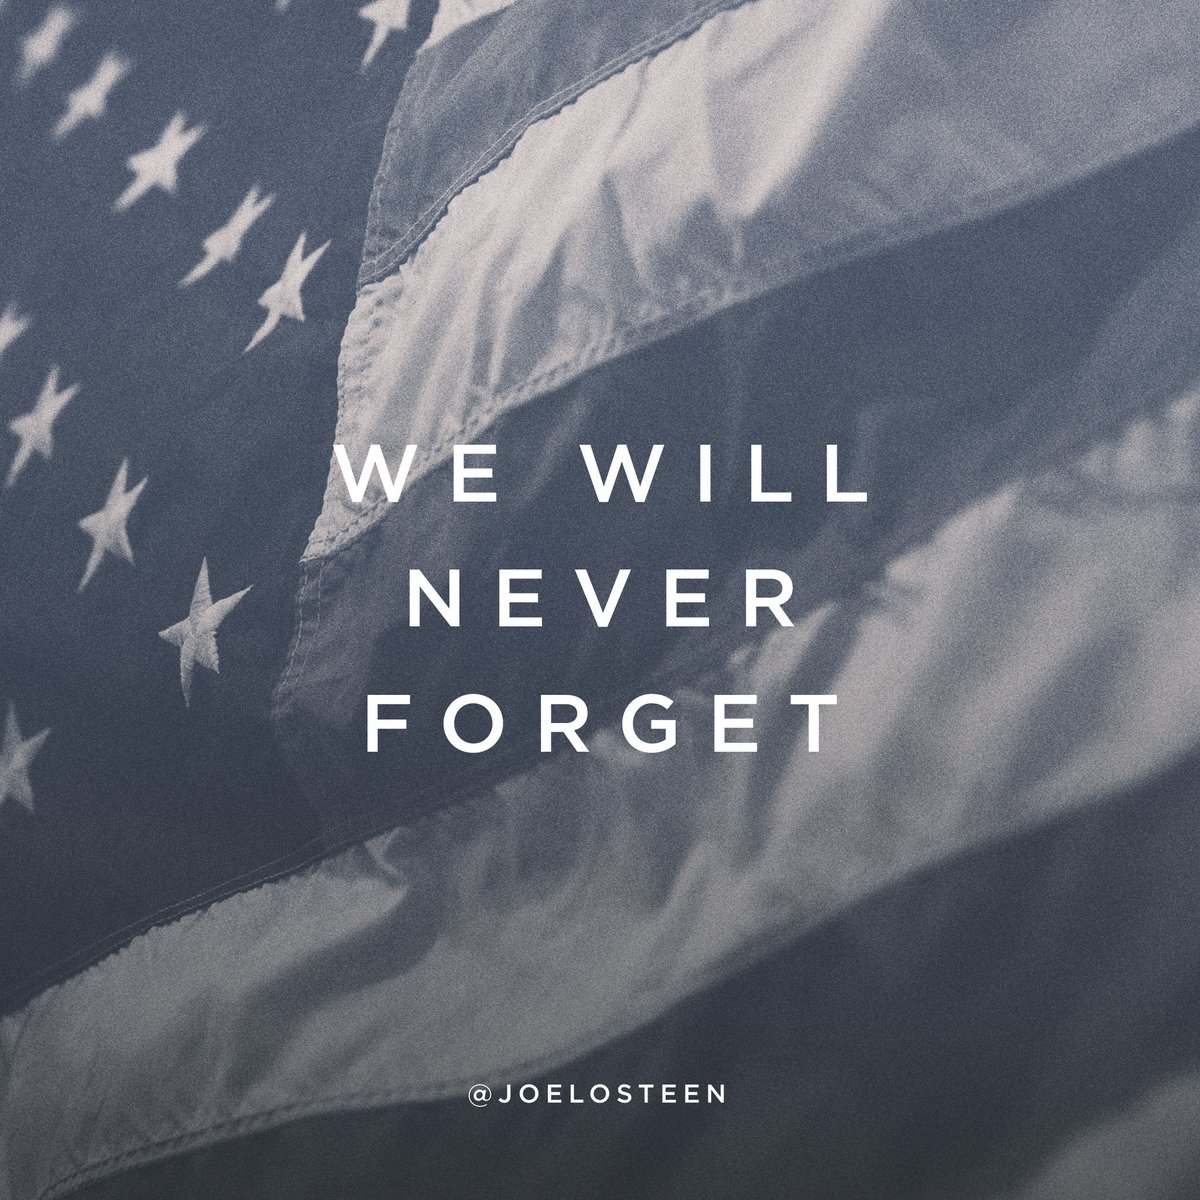 We are praying for the members of our armed forces and their families as we honor their sacrifice this Memorial Day. #MemorialDay